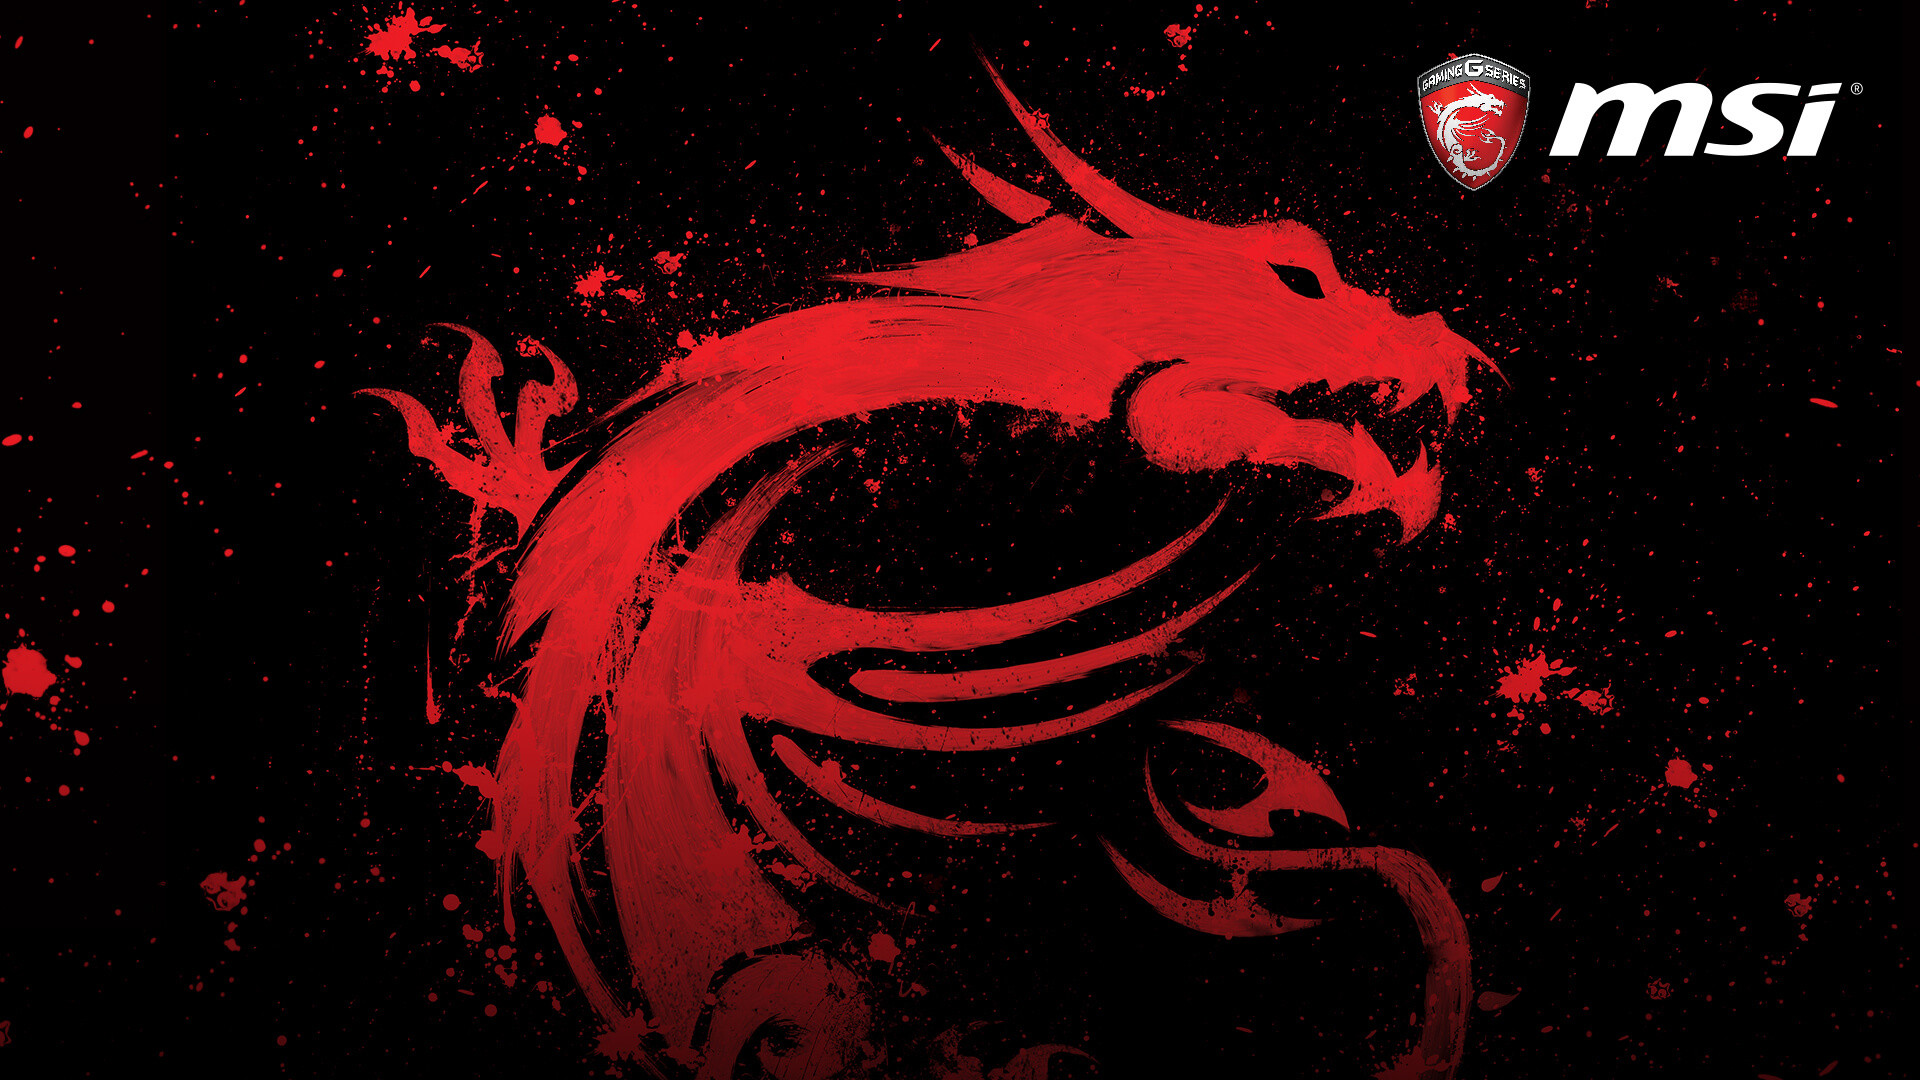 Msi Dragon Wallpaper 1920x1080 80 Images